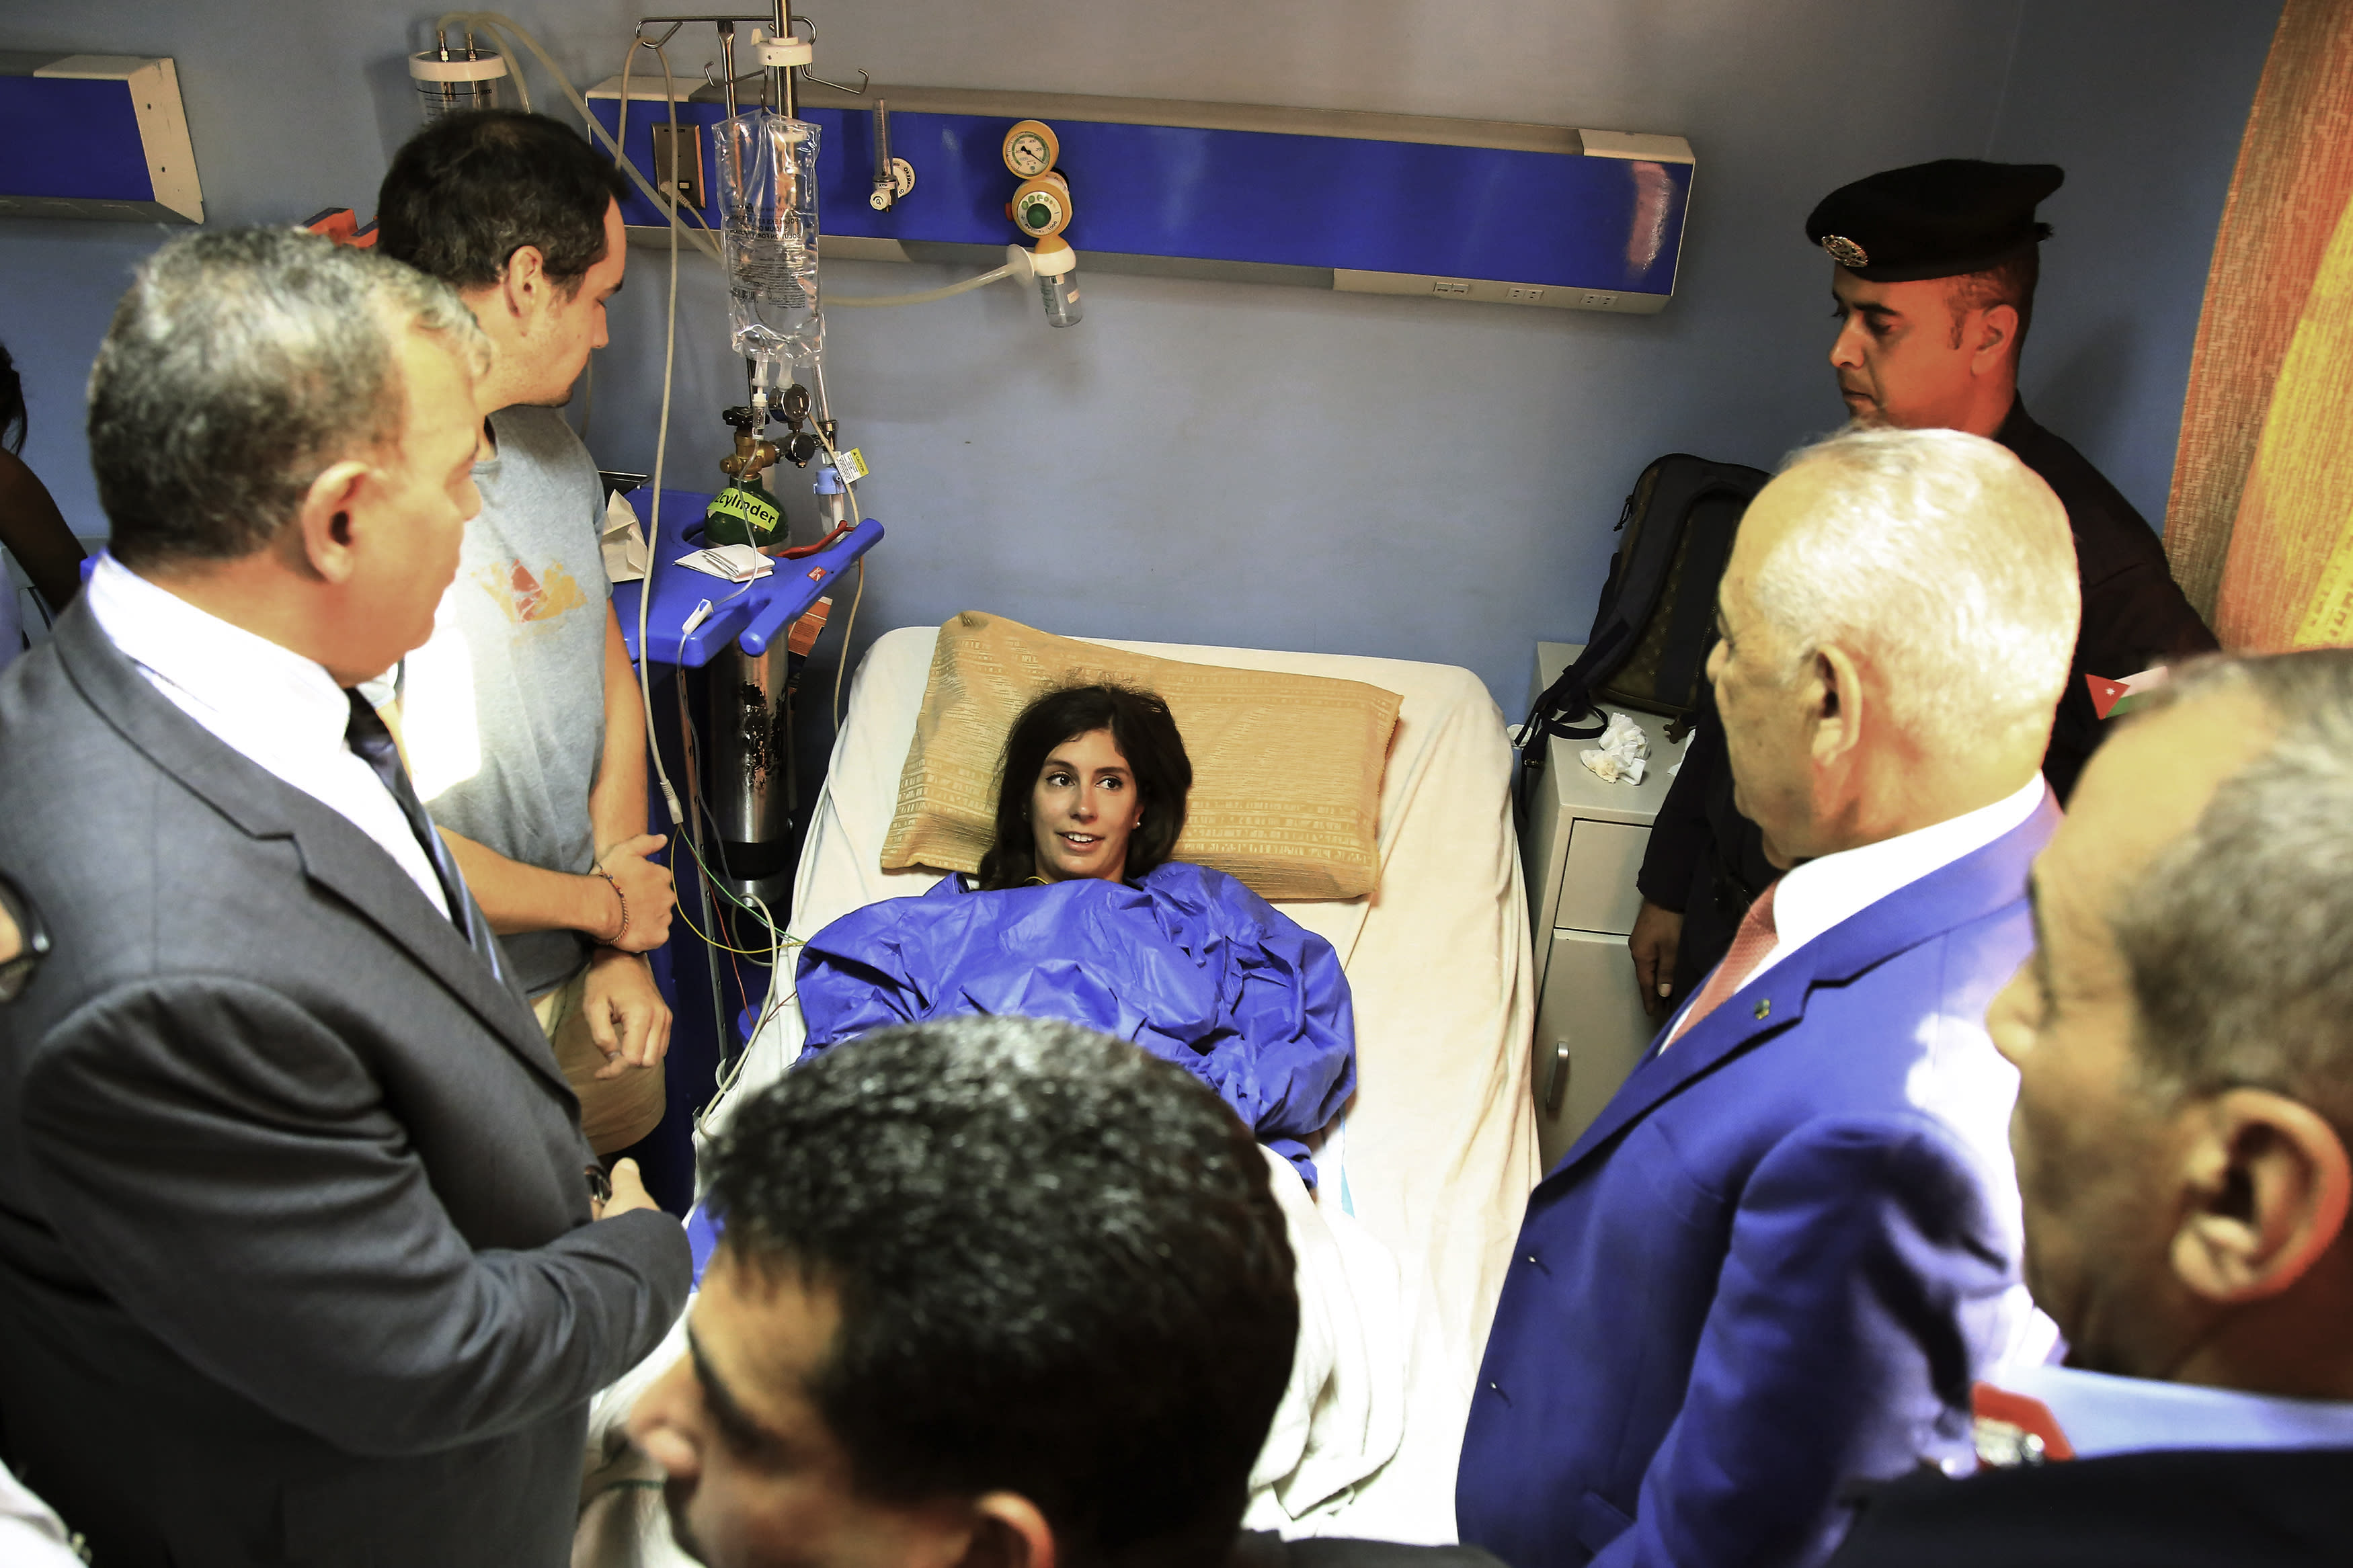 CORRECTS LOCATION OF HOSPITAL TO JERAASH -Royal Court chief Yousef Issawi, right, visits one of the victims of a knife attack in Jerash, Jordan on Wednesday, Nov. 6, 2019. A young man from a Palestinian refugee camp on Wednesday stabbed eight people, including four foreign tourists and their tour guide, at a popular archaeological site in Jeraash, in northern Jordan, security officials said. The wounded included three Mexican tourists and a Swiss woman, according to Jordan's Public Security office. Along with the tour guide, three other Jordanians, including two security officers and a bus driver, were also hurt before the attacker was subdued and arrested. (AP Photo/Raad Adayleh)